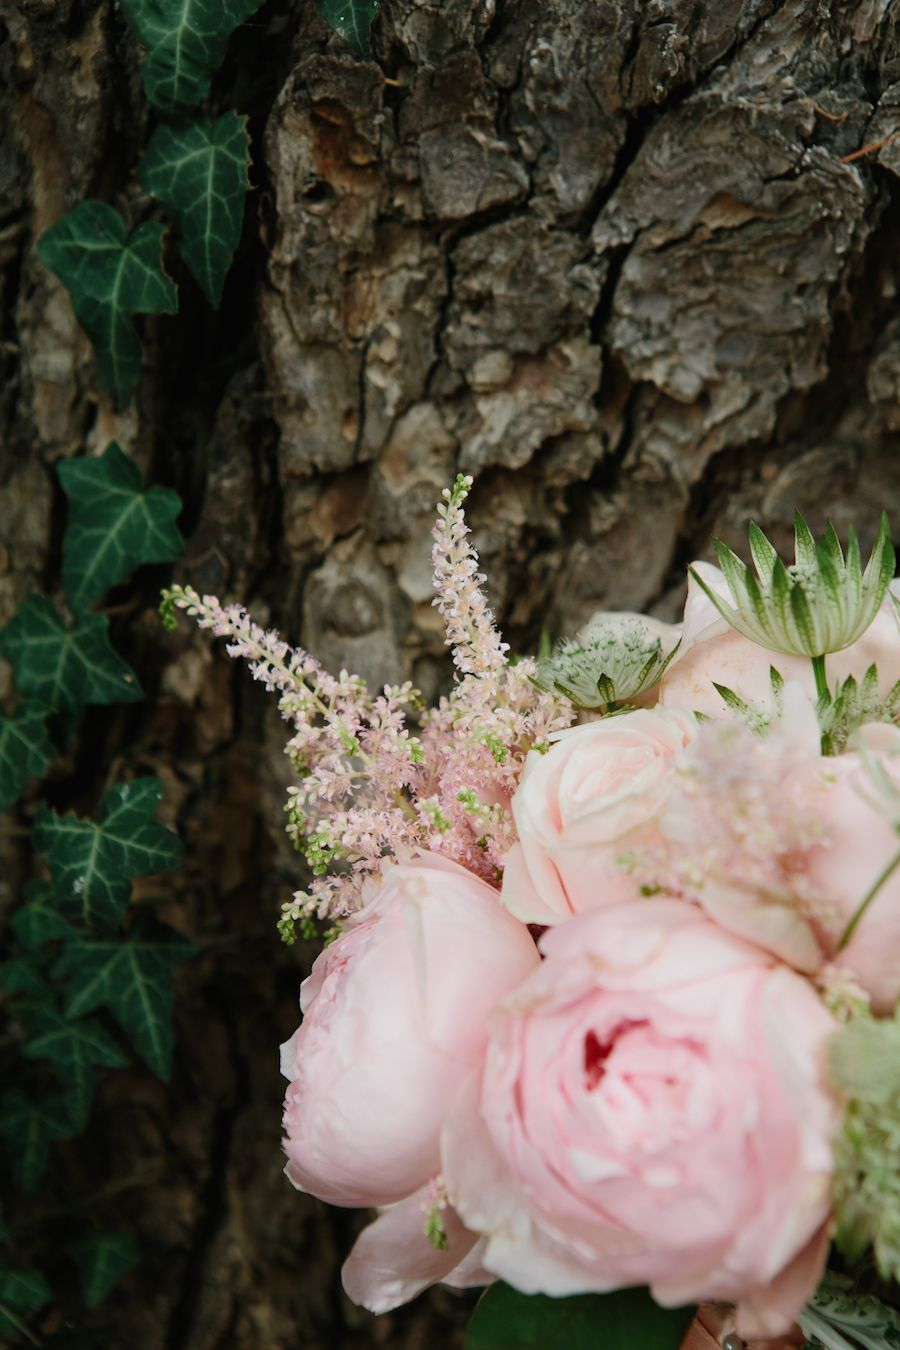 Un matrimonio romantico in bianco e rosa | Wedding Wonderland